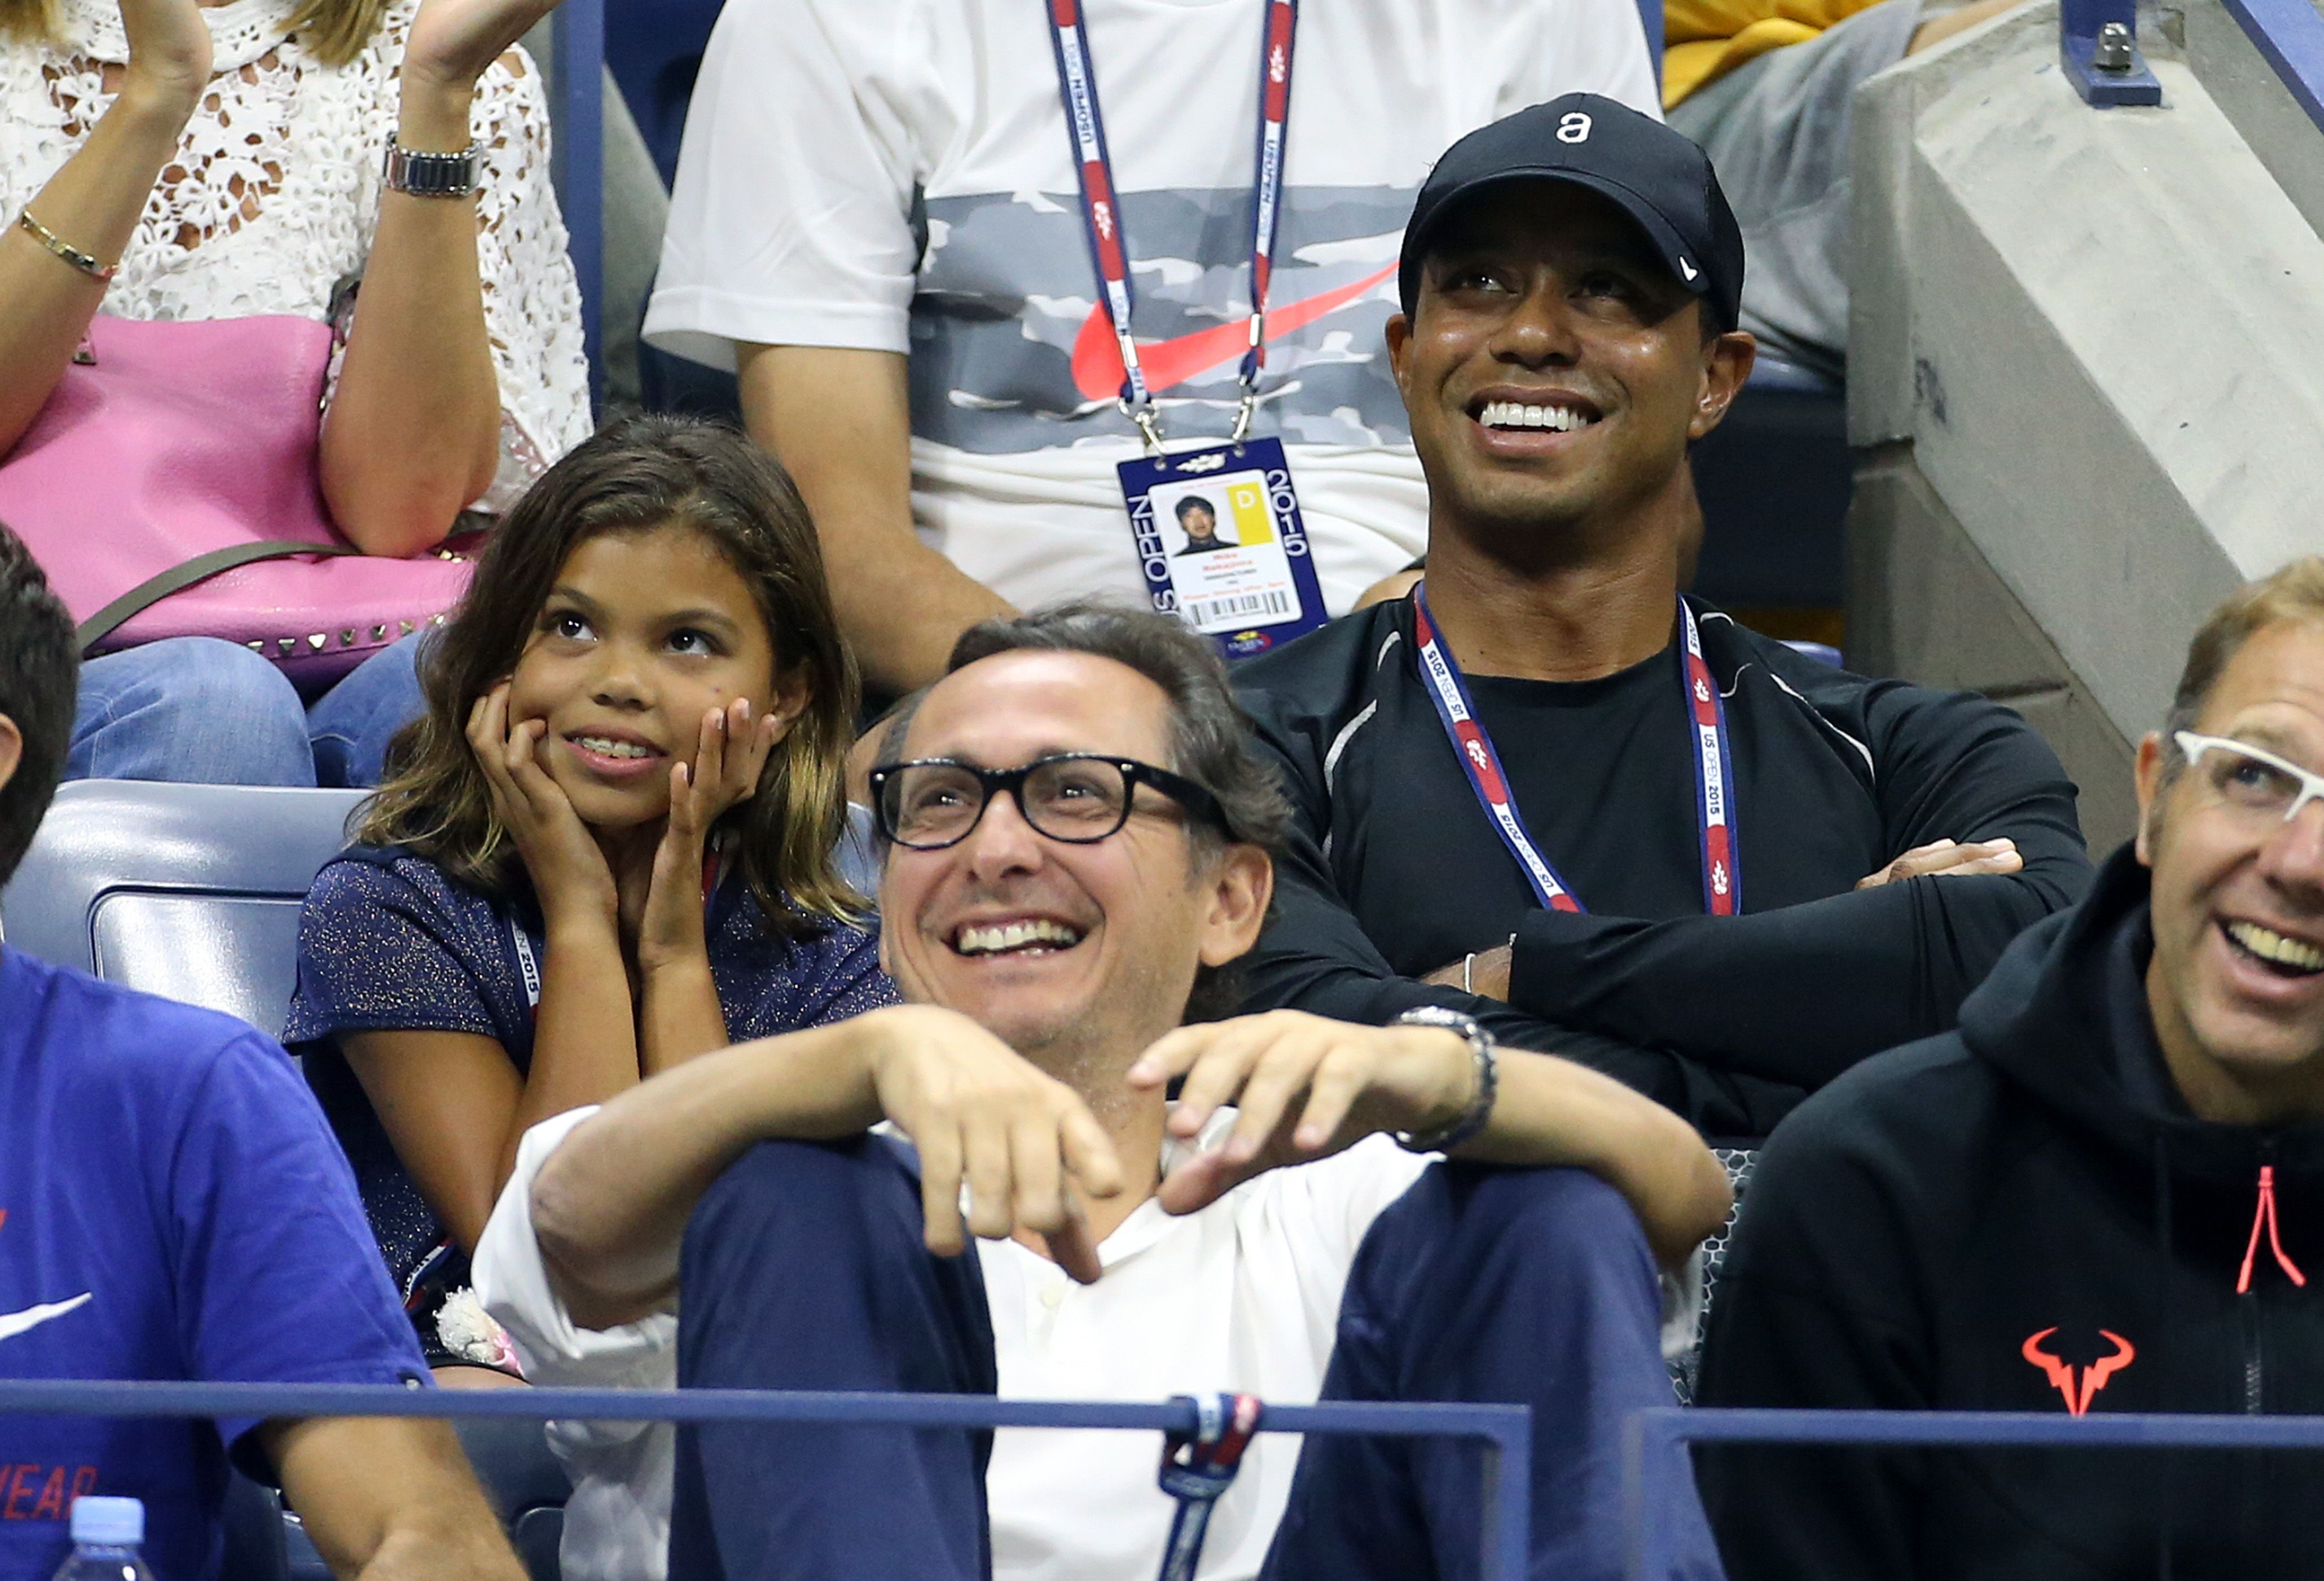 Tiger and daughter Sam smile when caught on camera while attending the 2015 US Open tennis championships